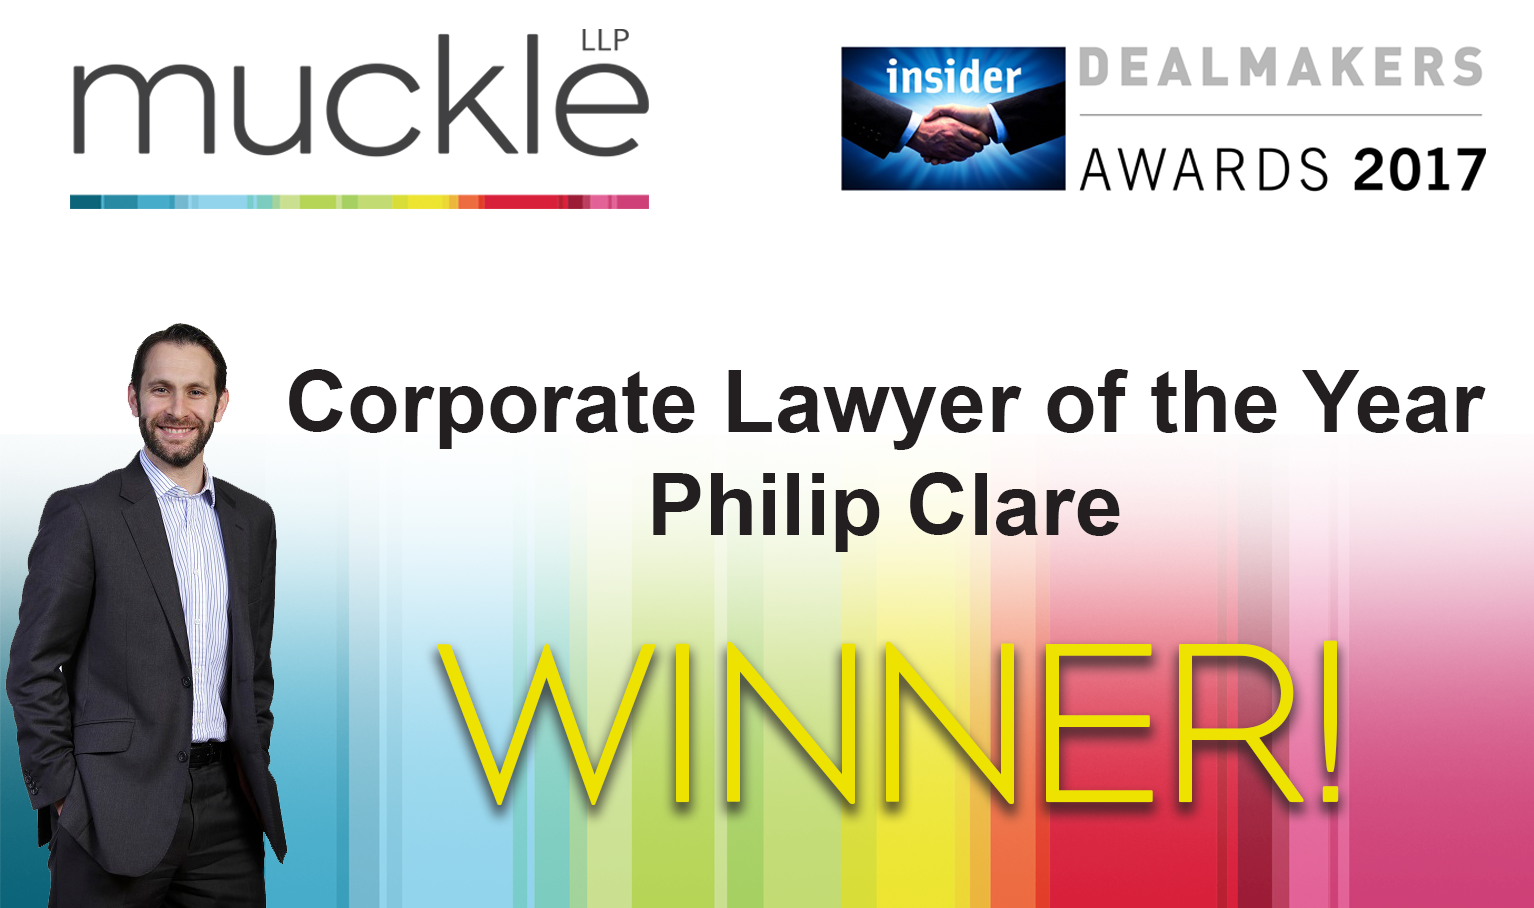 Insider North East Dealmakers Awards 2017 Winner Philip Clare Corporate Lawyer of the Year